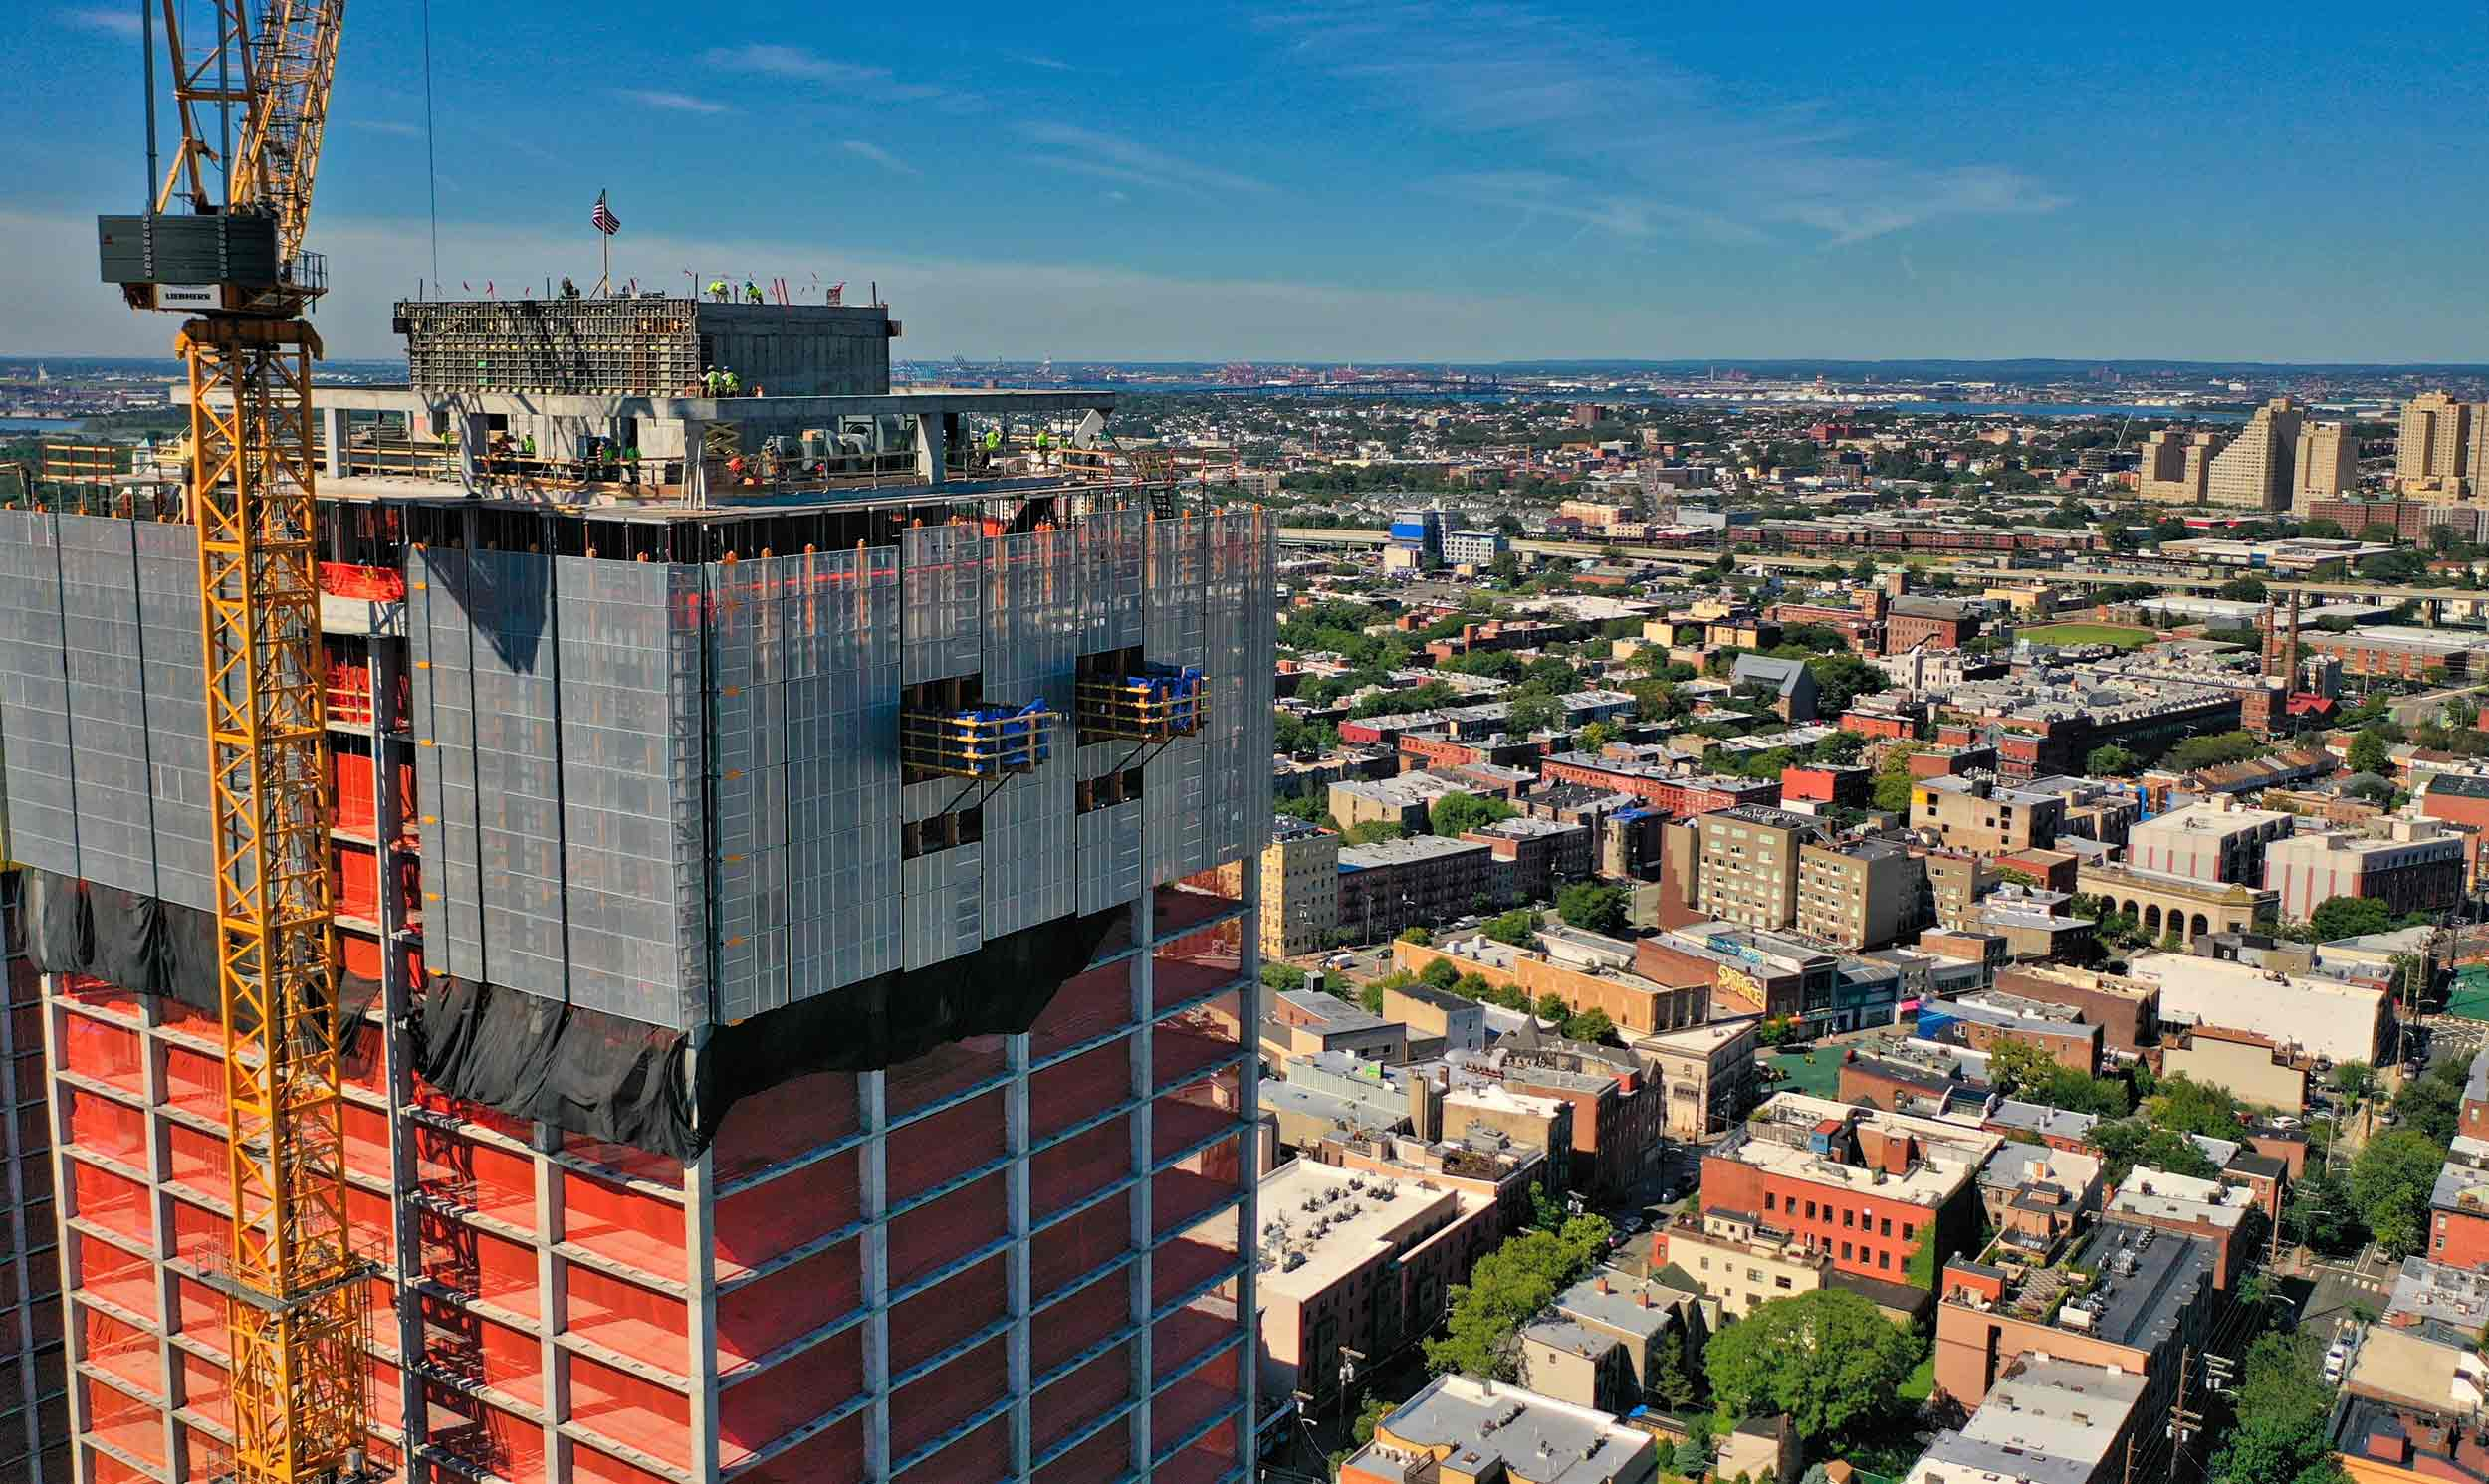 351 Marin Blvd. is a mixed-use project located in the heart of downtown Jersey City in New Jersey. The tower will have 507 apartments, including 8,000 ft2. of commercial space.